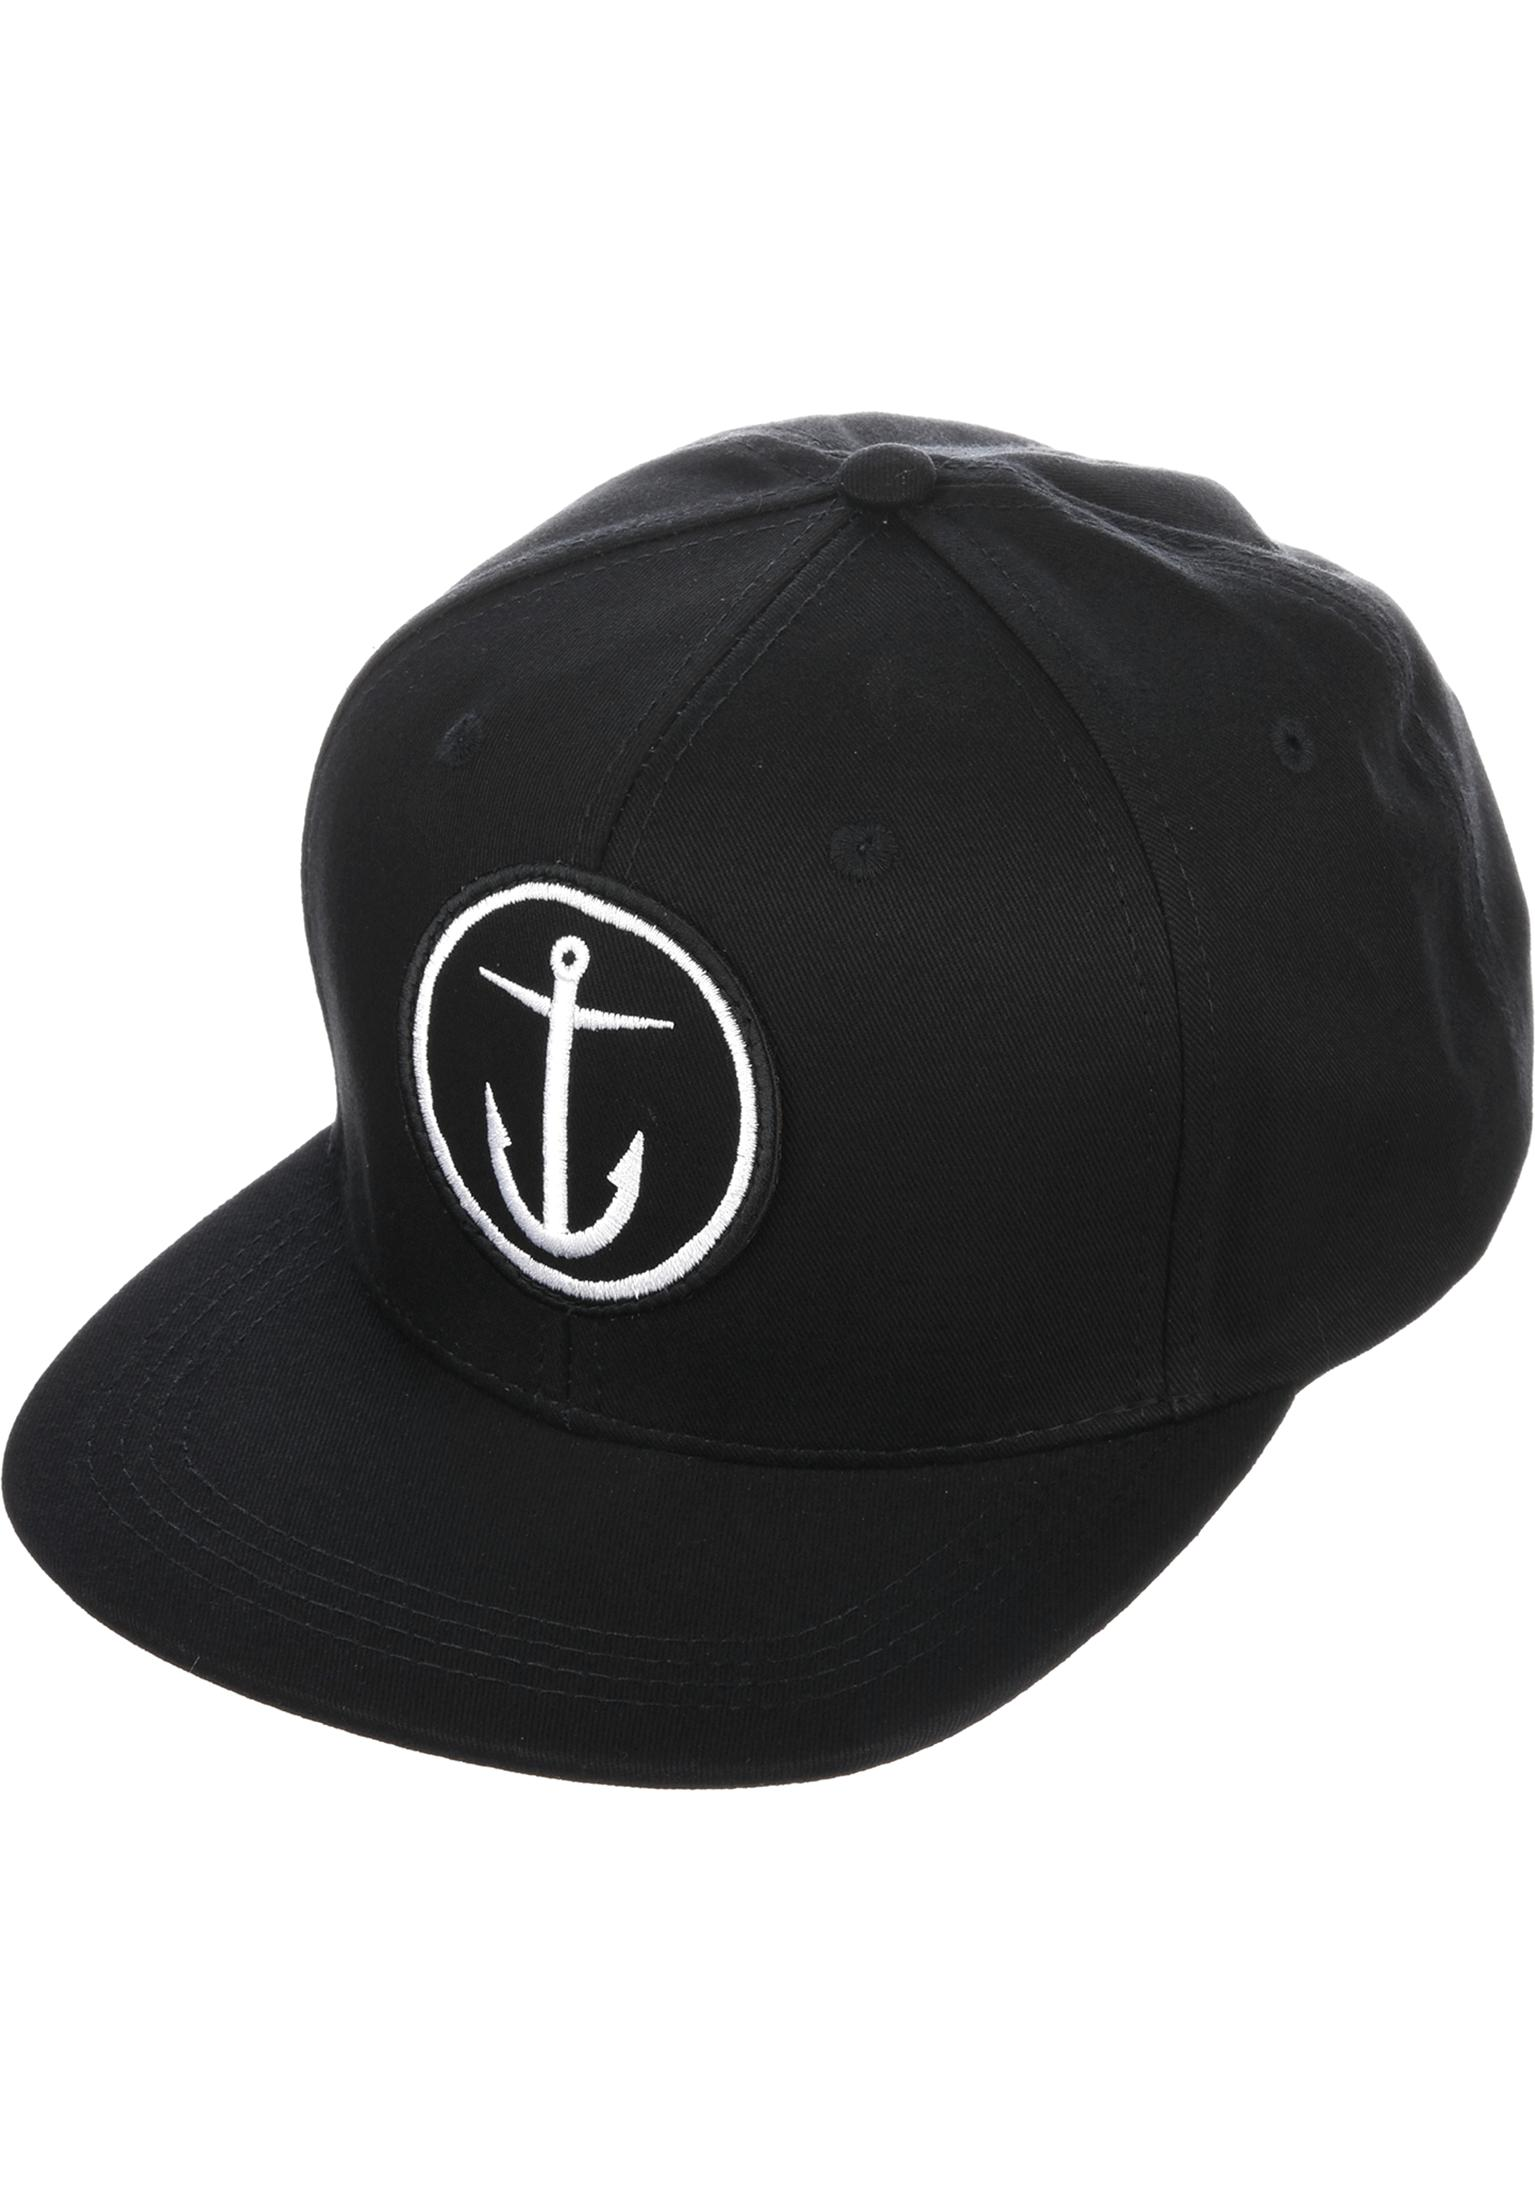 Captain Fin Caps Original Anchor 6 Panel black white Vorderansicht